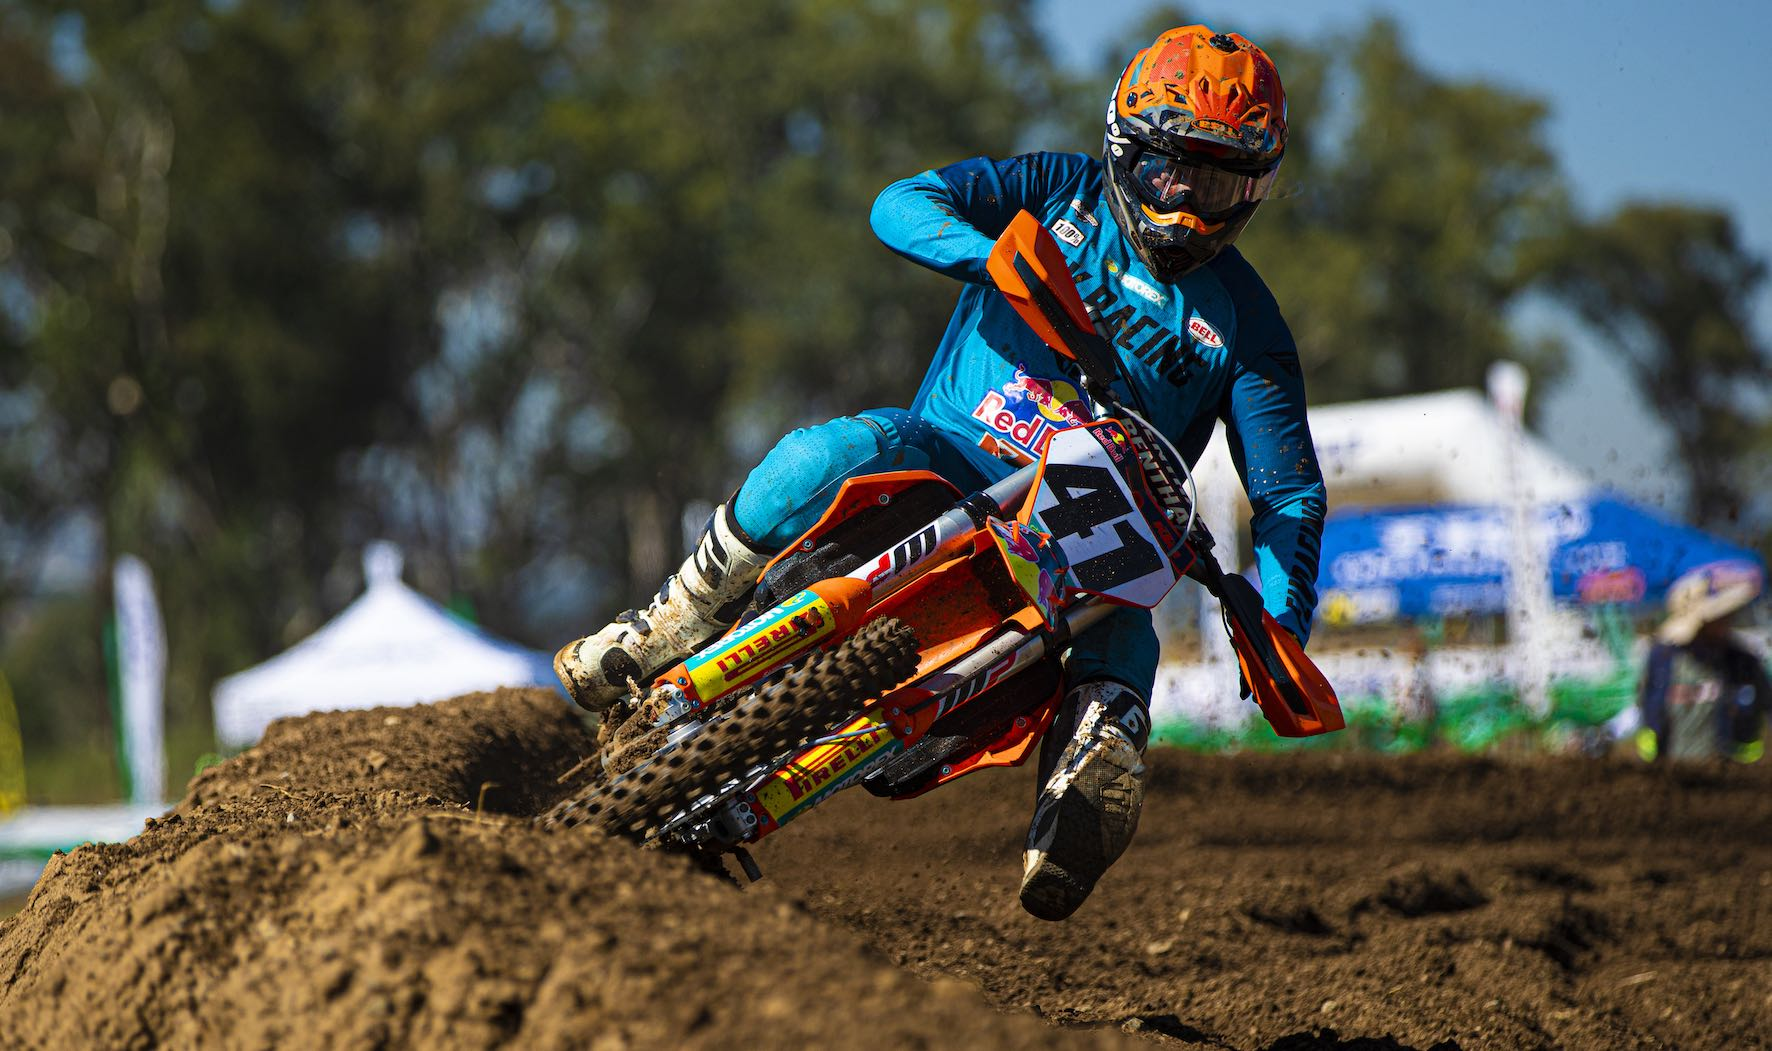 Tristan Purdon wins round 1 of the 2021 SA Motocross Nationals